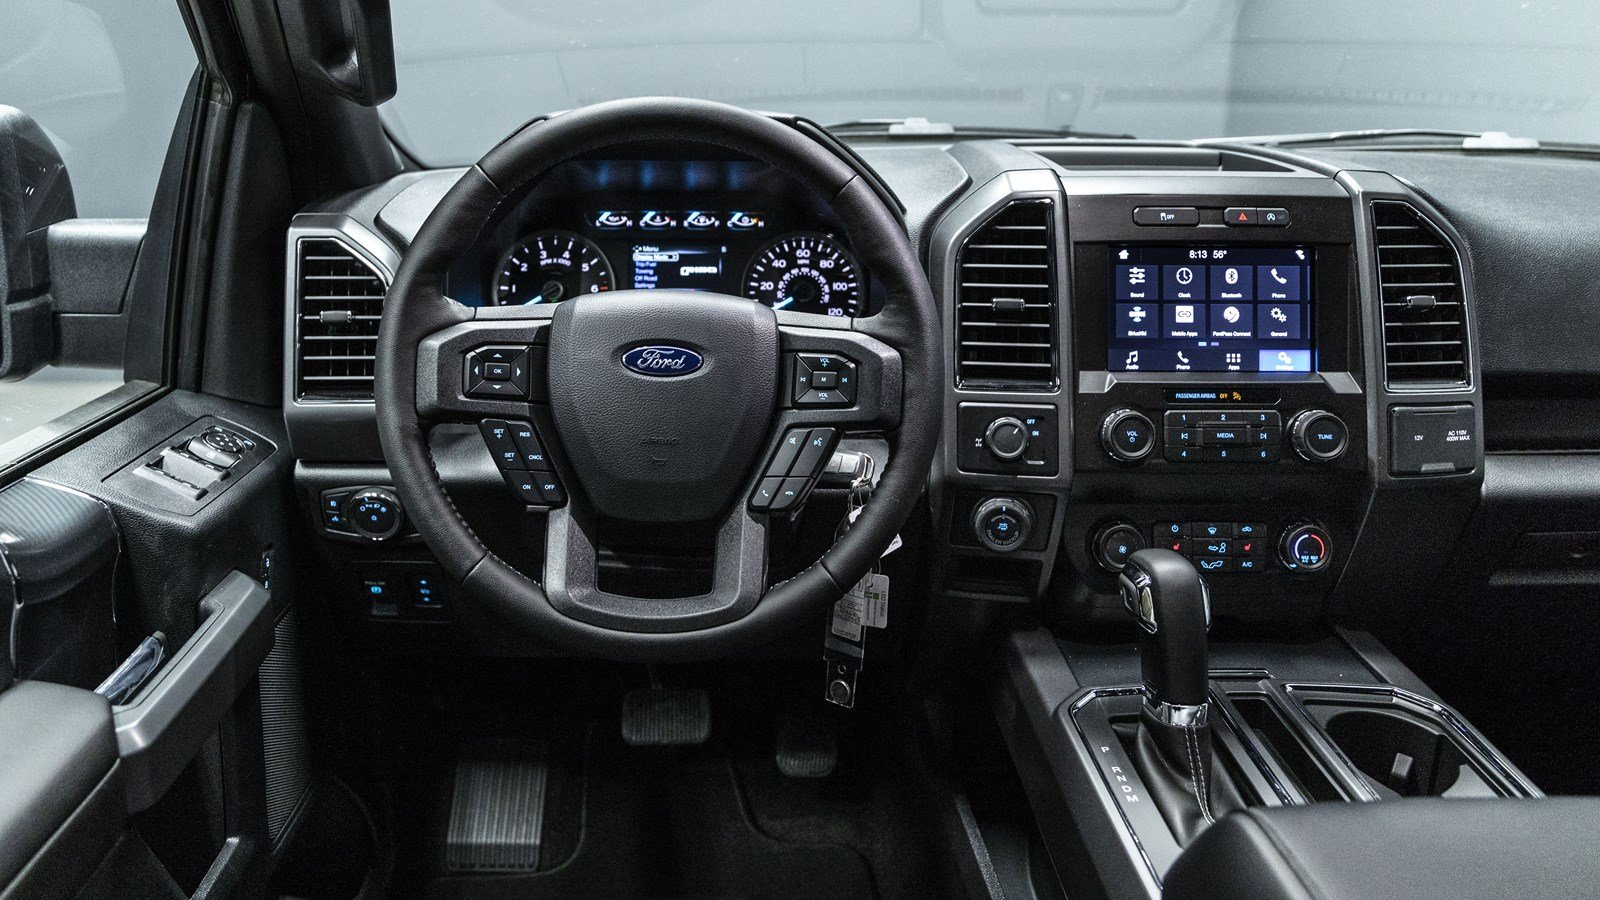 Ken Grody Ford Carlsbad >> New 2019 Ford F-150 XLT Crew Cab Pickup in Carlsbad #12278 ...